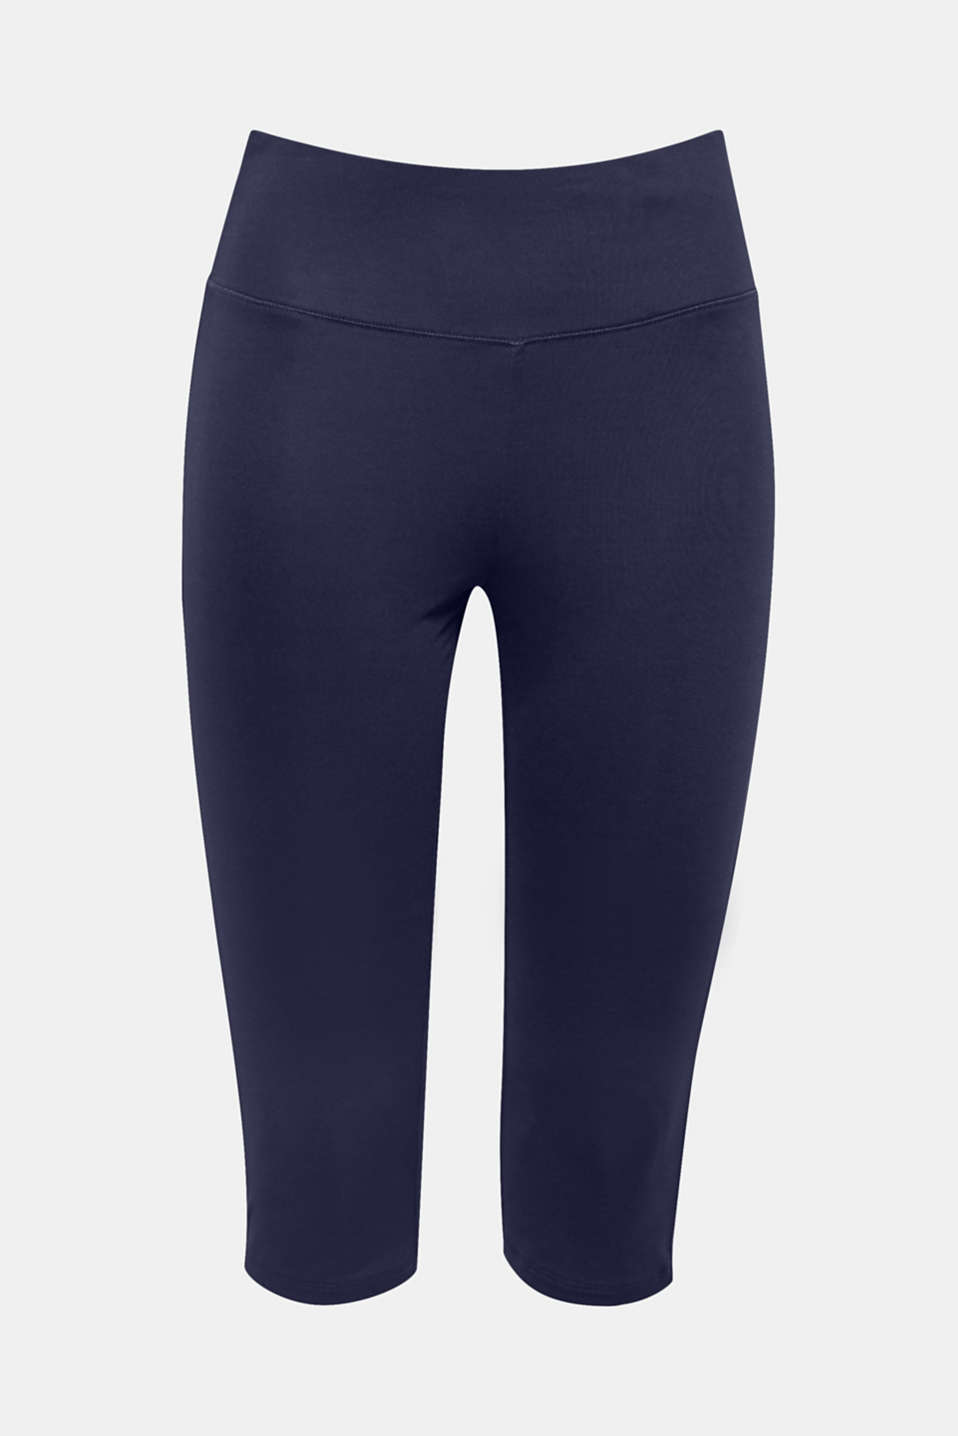 These capri leggings for the change in seasons are the perfect tracksuit bottoms with high-performance E-DRY technology.